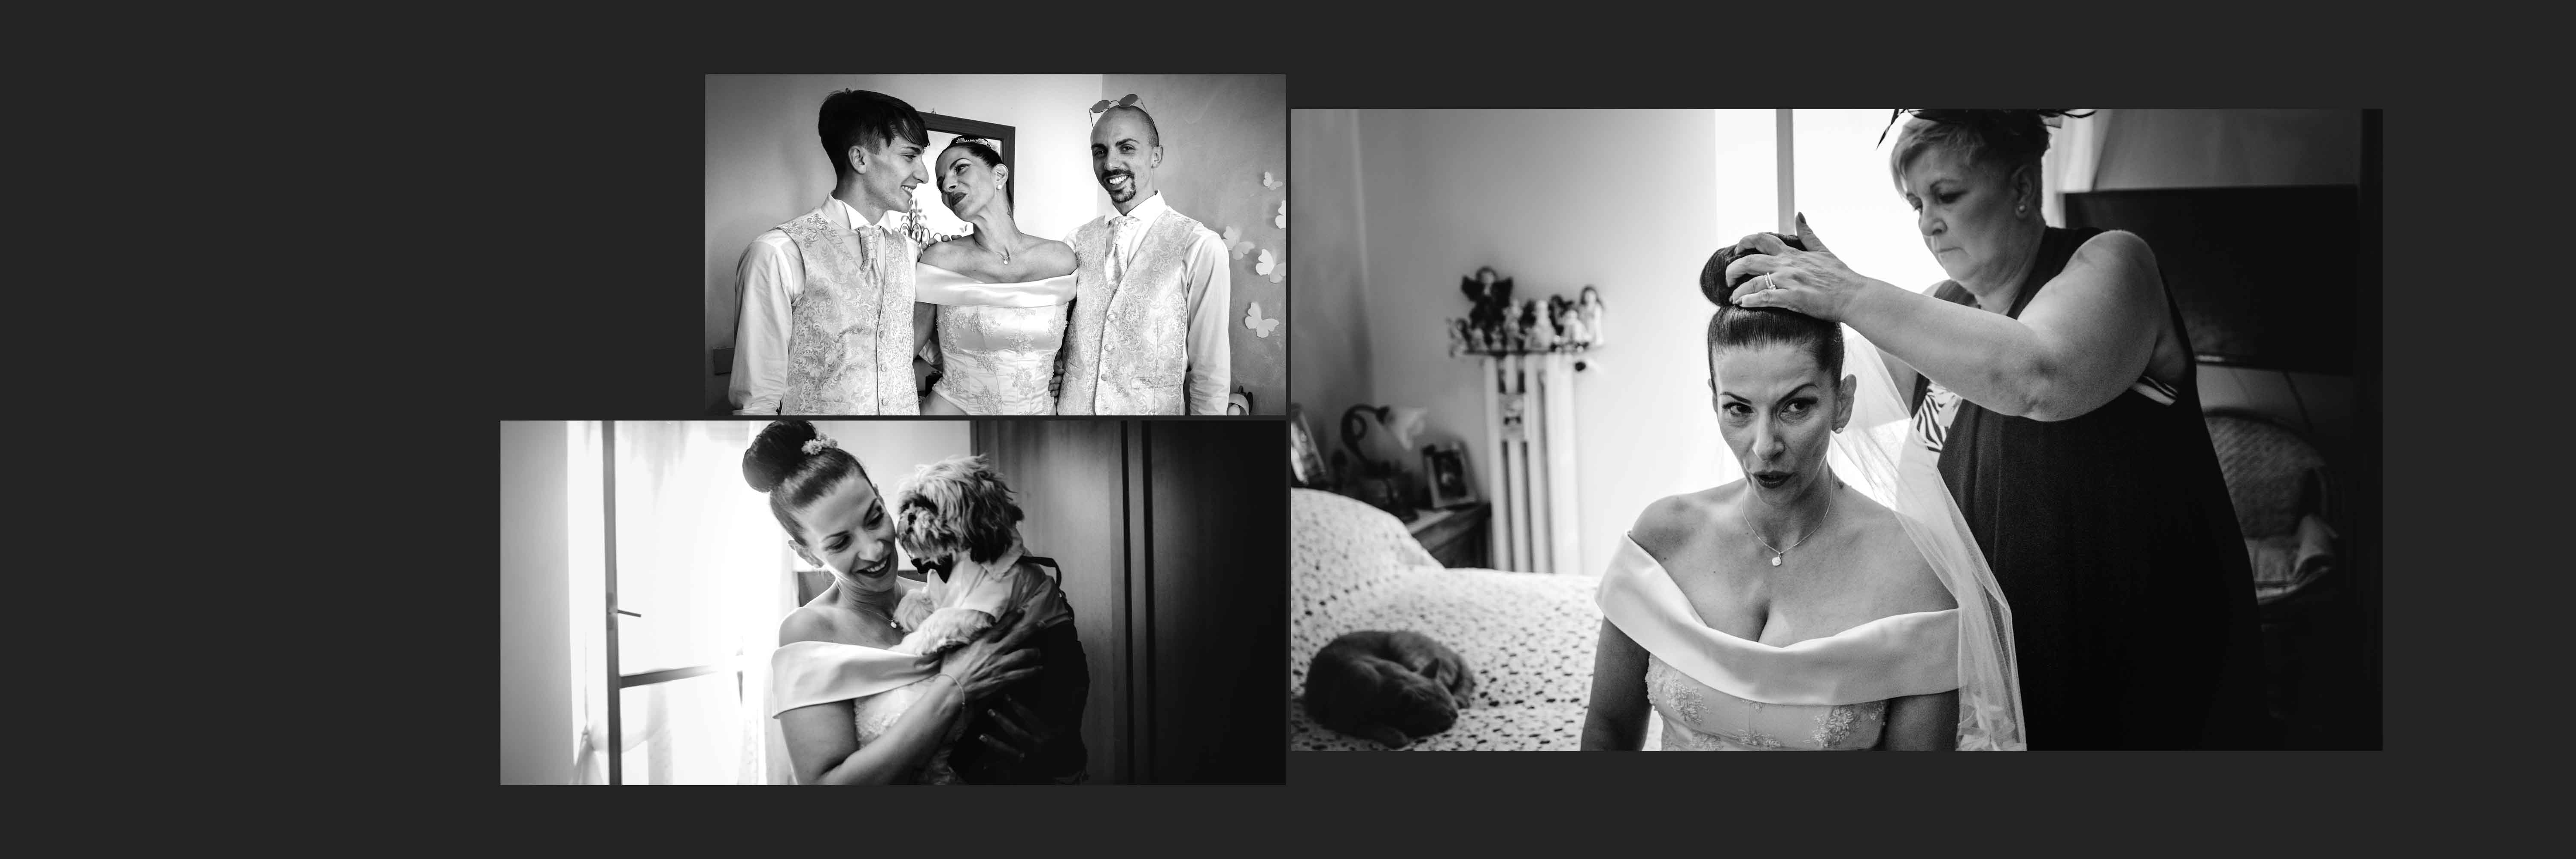 monicasica_fotografo matrimonio_torino_saluzzo_envets saluzzo_weddingday_weddingphotographer-24